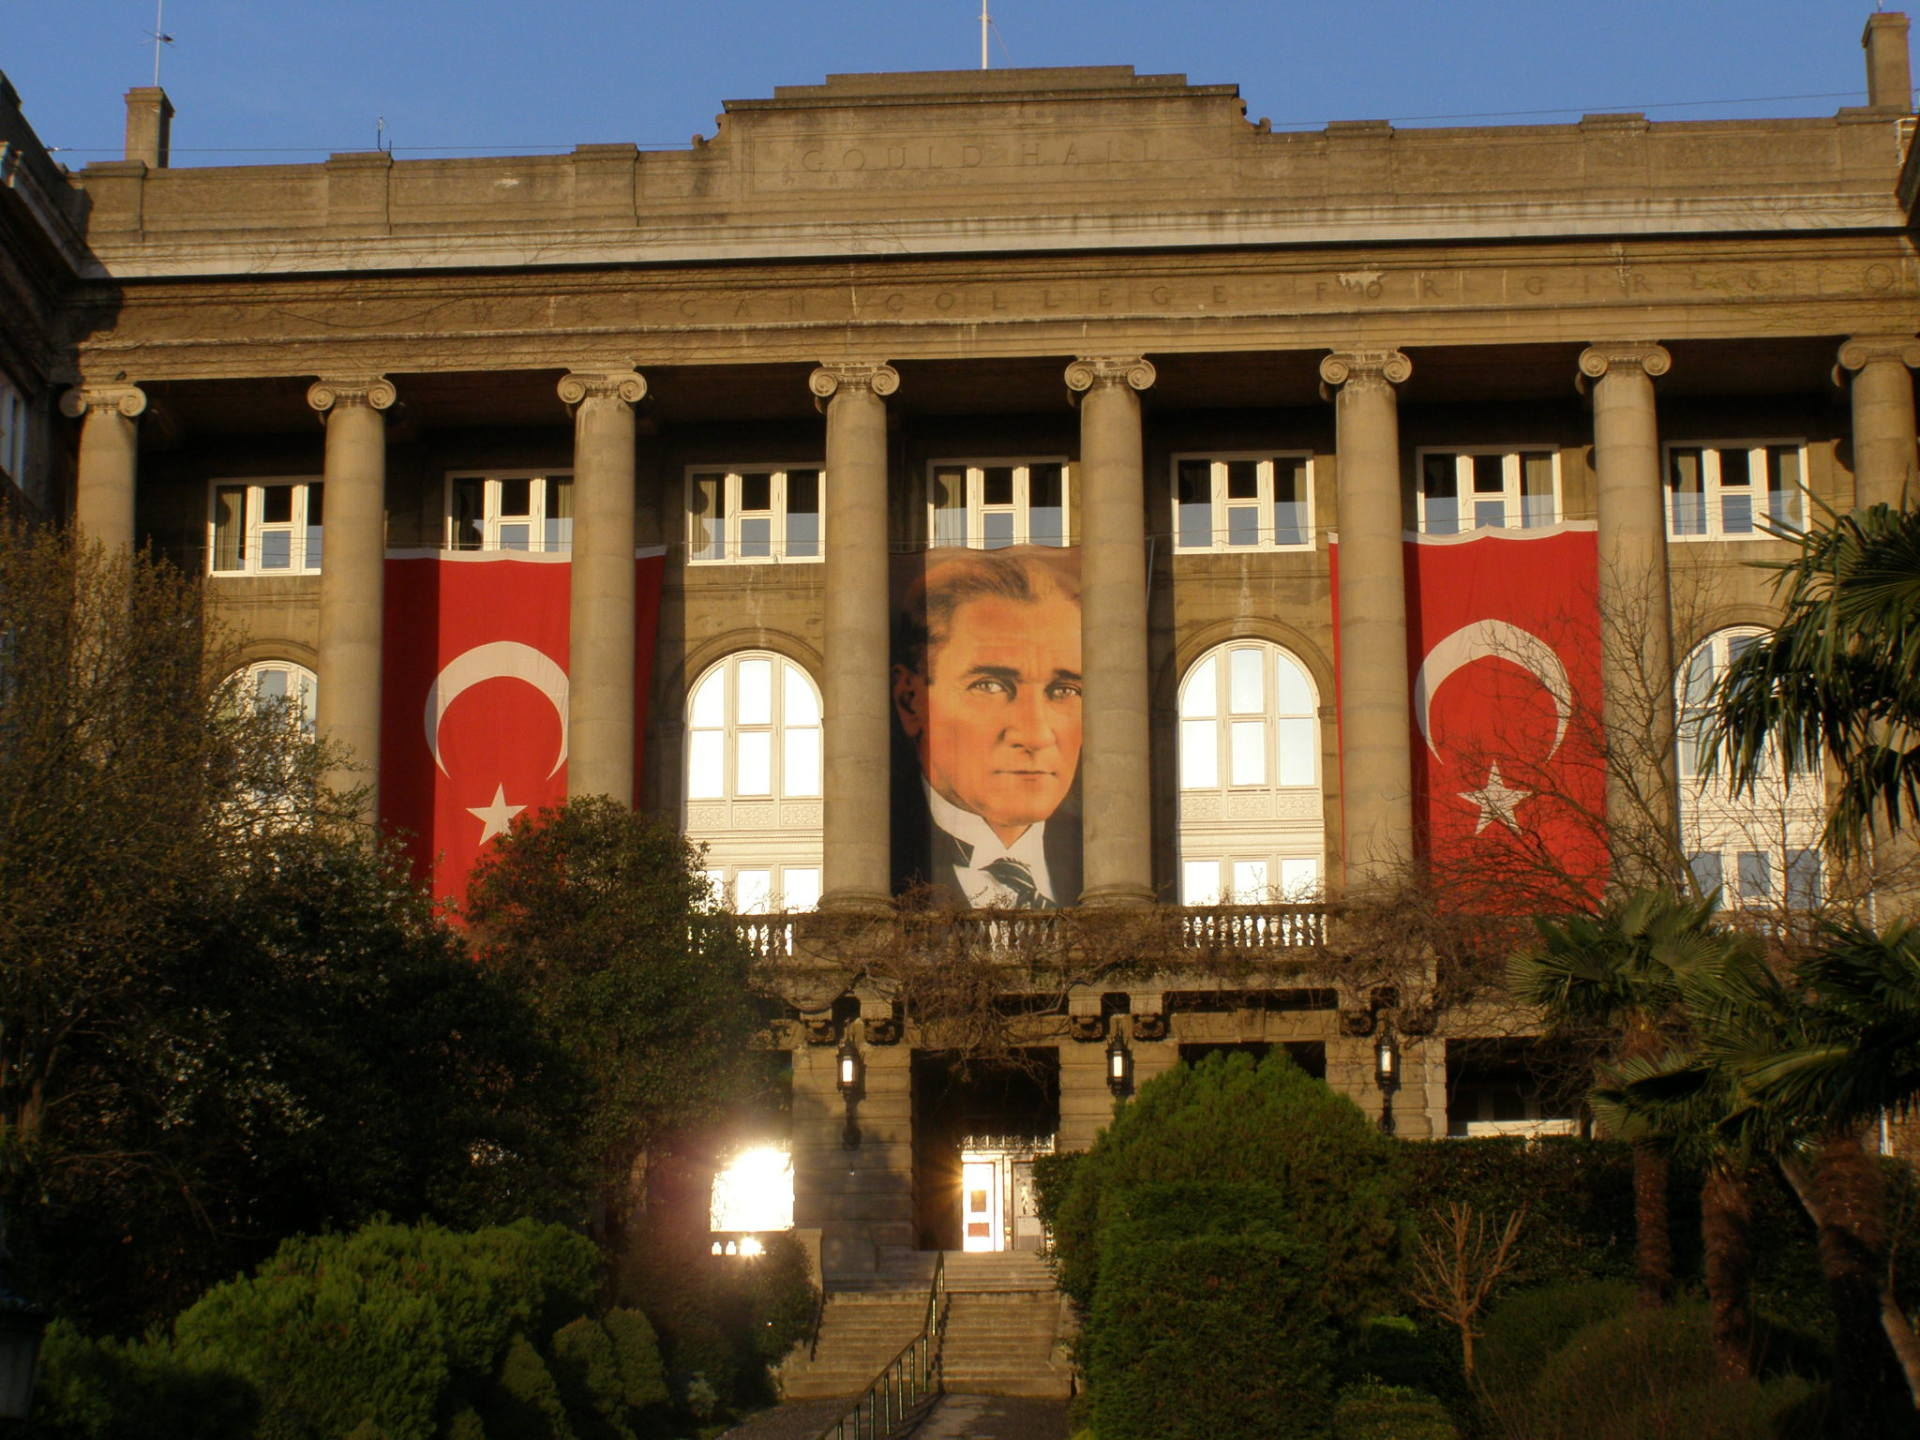 The main hall at Robert College adorned for Ataturk's birthday. Istanbul, Turkey: annmariemershon.com